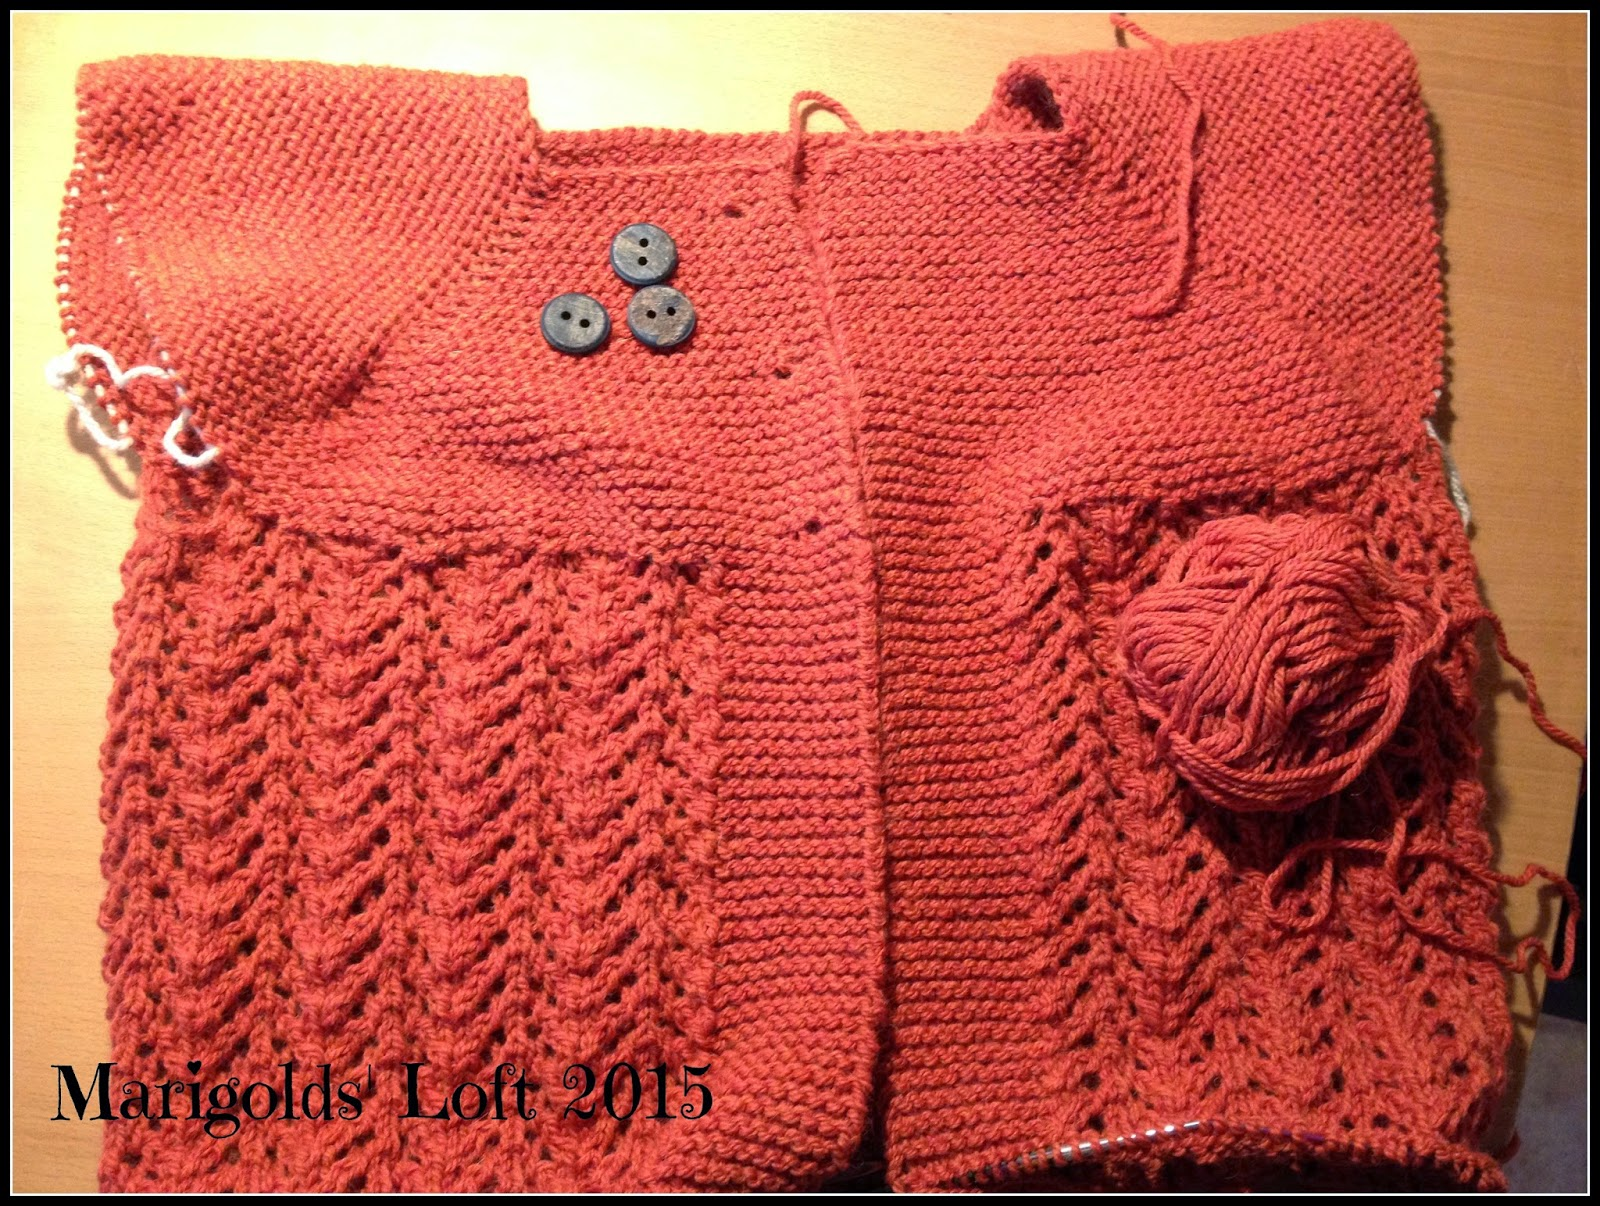 February Lady Sweater Ravelry